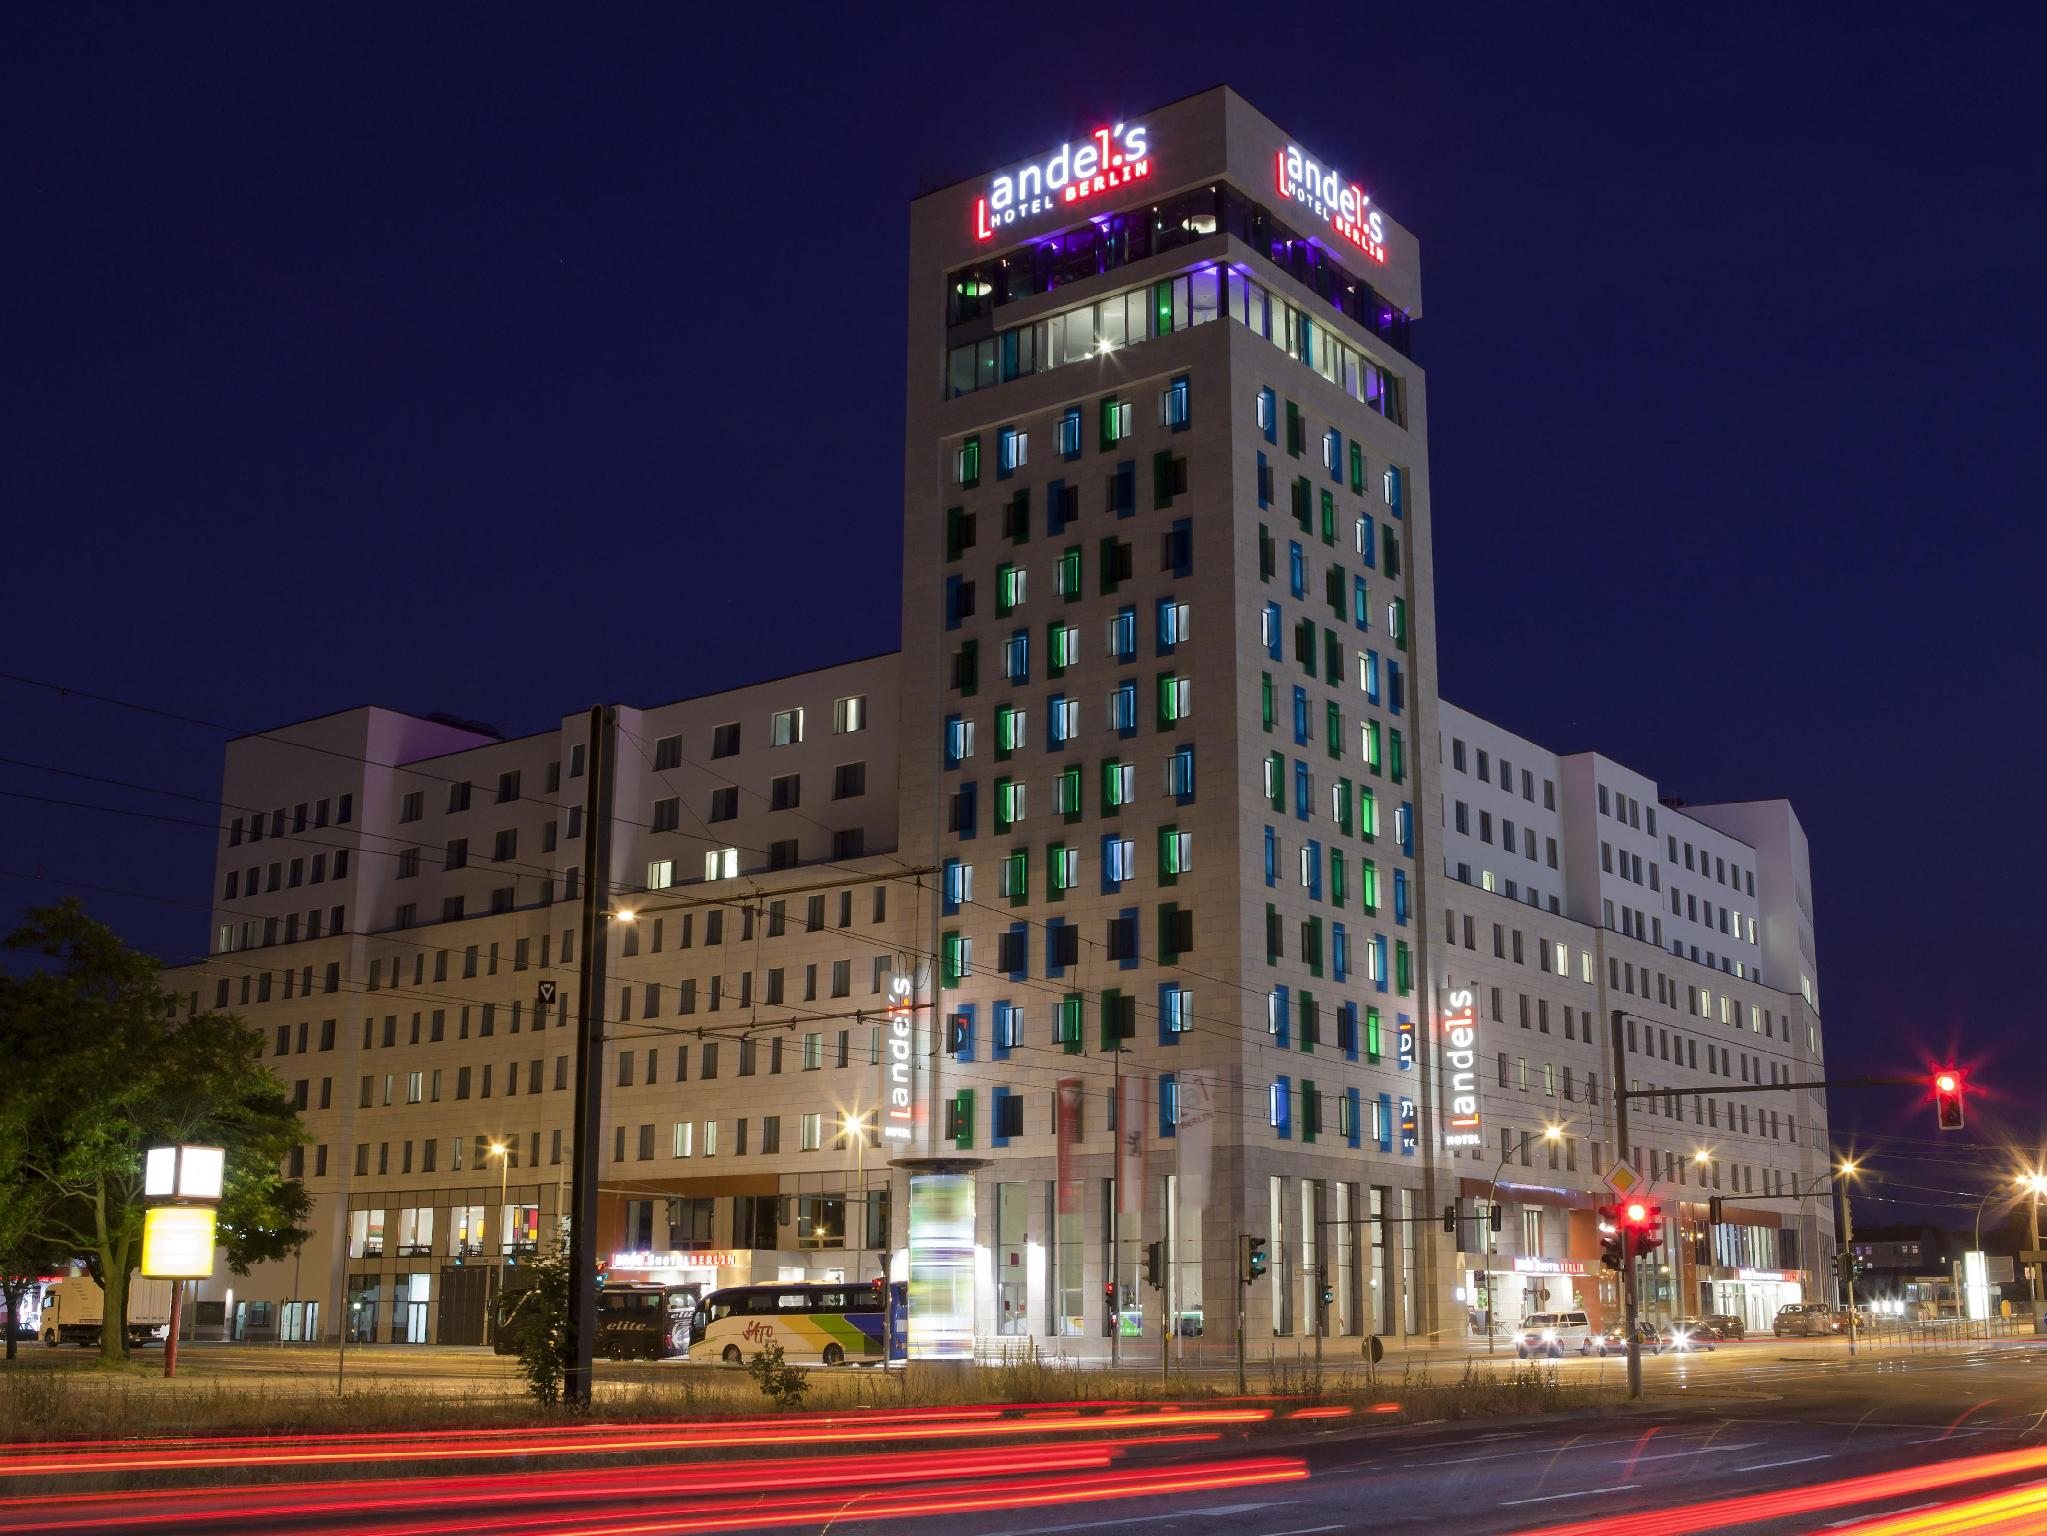 andel's Hotel Berlin, managed by Vienna International Hotels and Resorts Berlín - Vistas